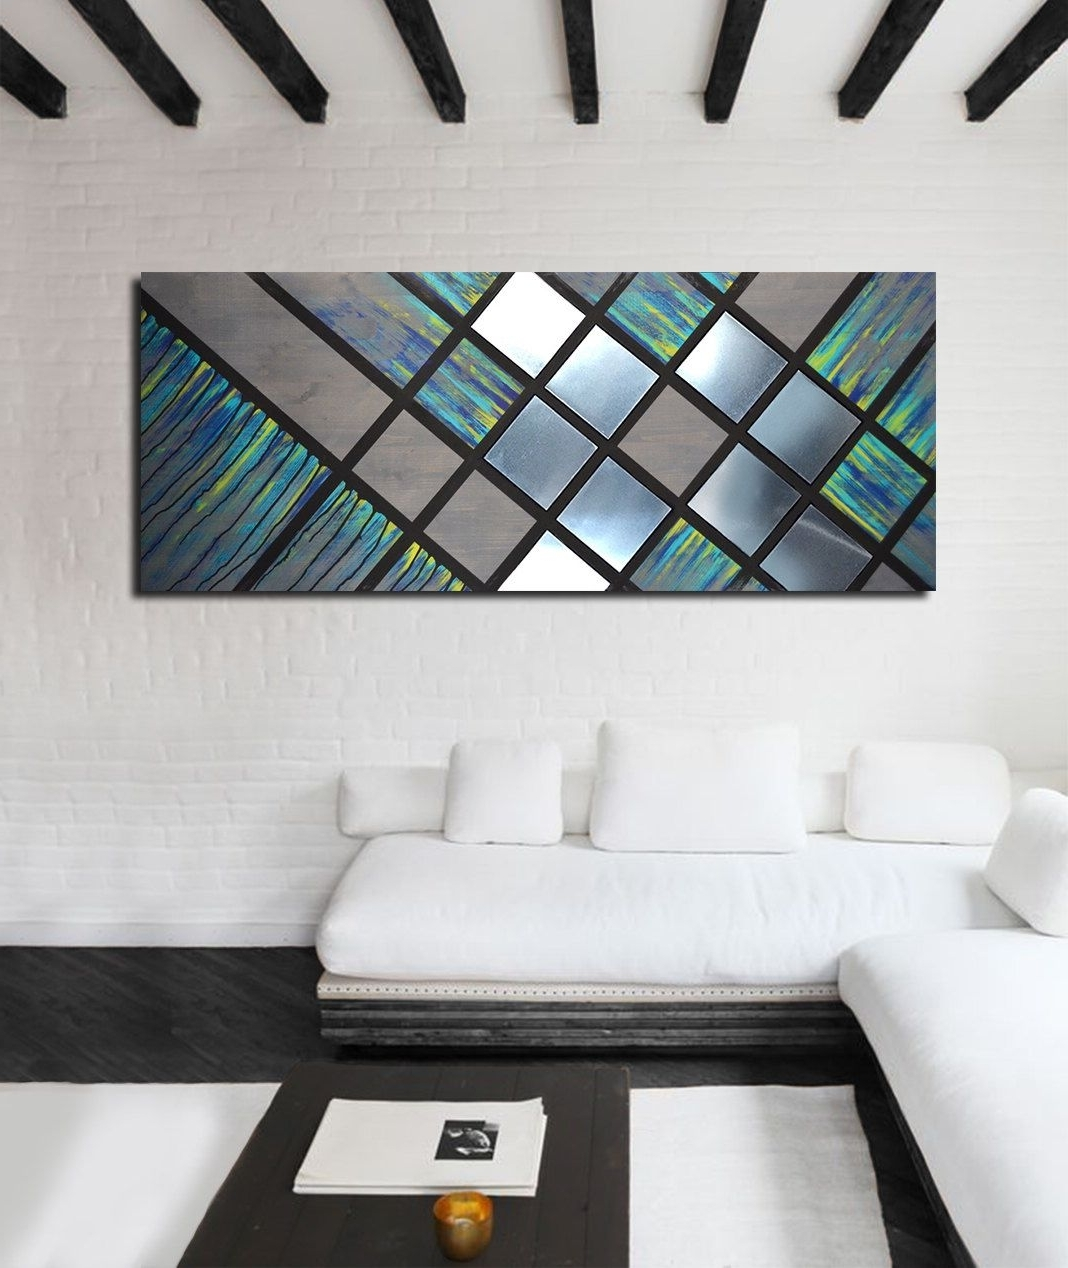 Metal Art Wall Decor, Wood Wall Art Decor, Modern Abstract Wall Art Within Best And Newest Large Contemporary Wall Art (View 7 of 15)